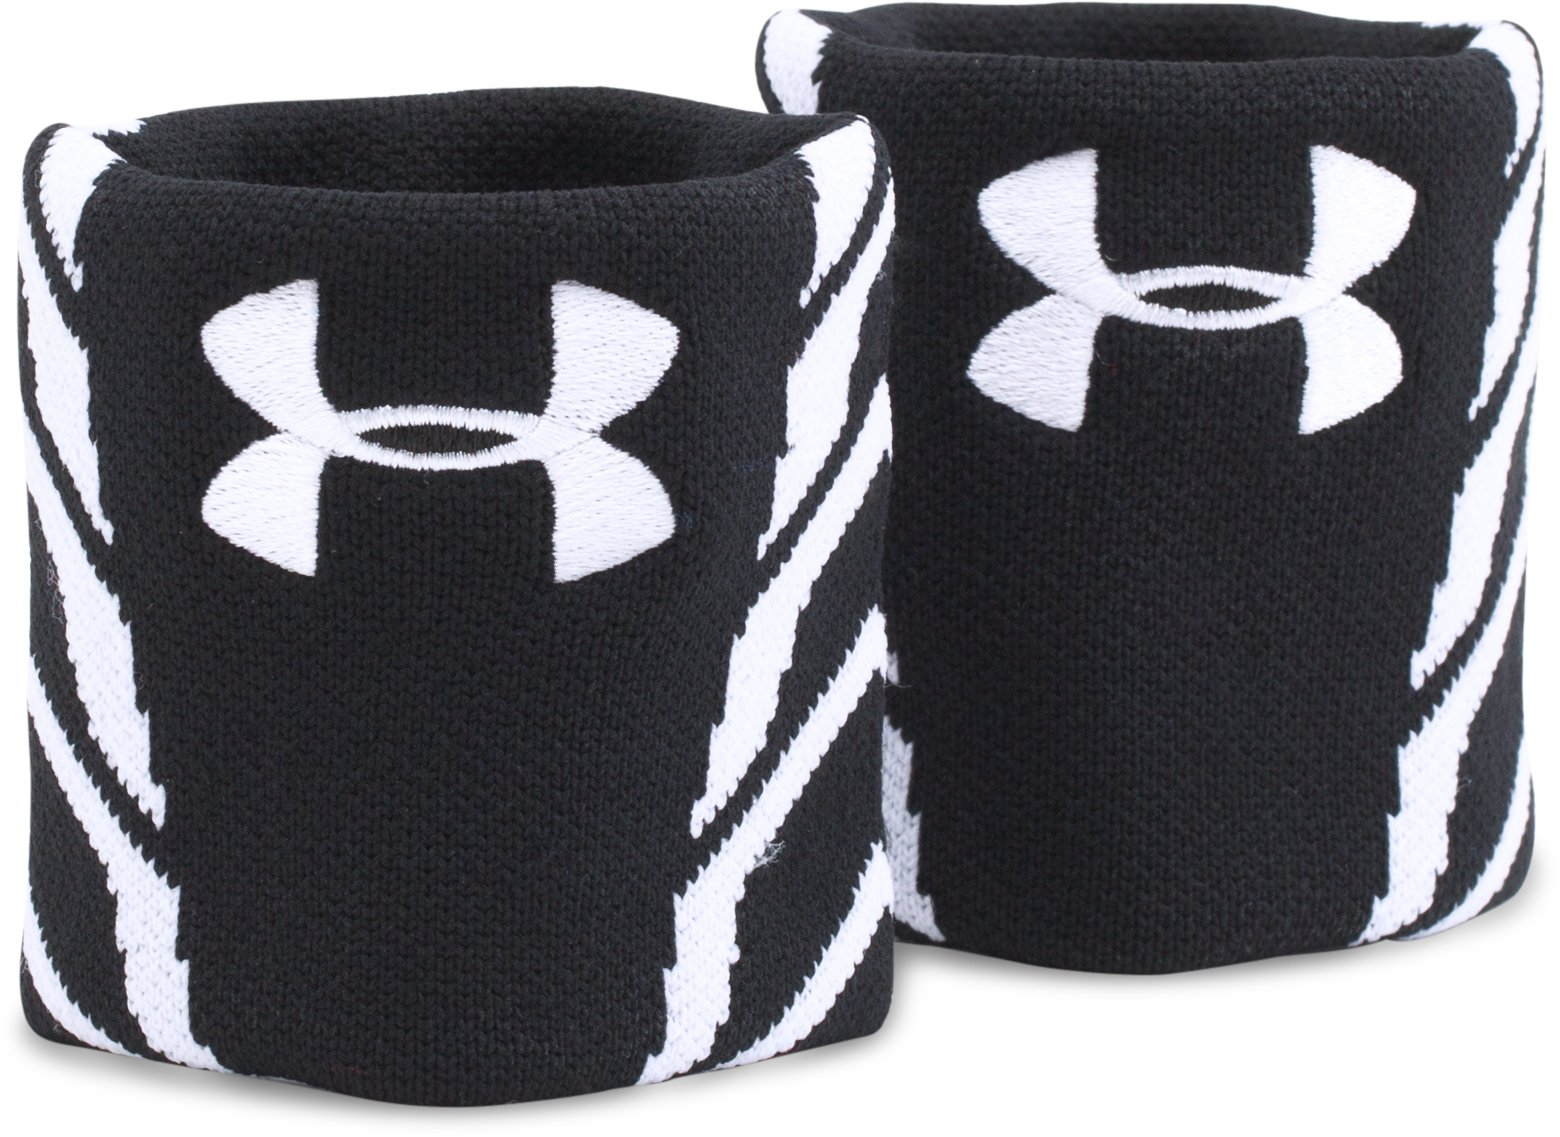 Men's UA Selects Wristbands, Black